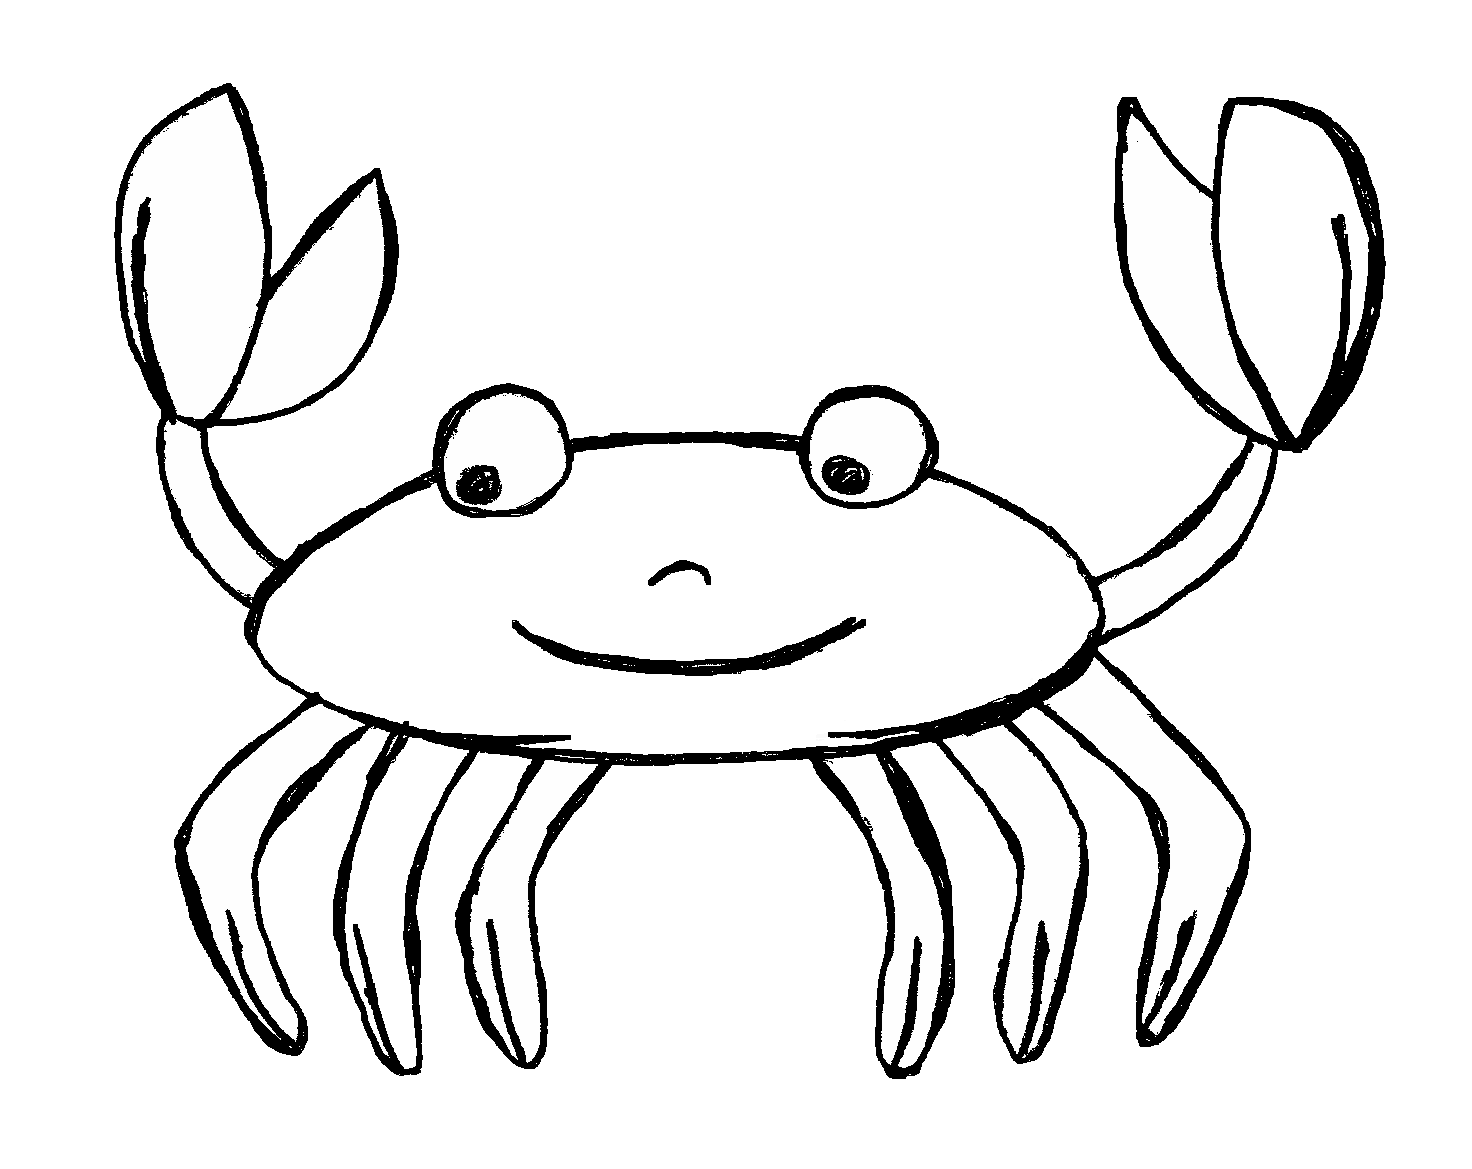 Ghost Crab clipart #4, Download drawings